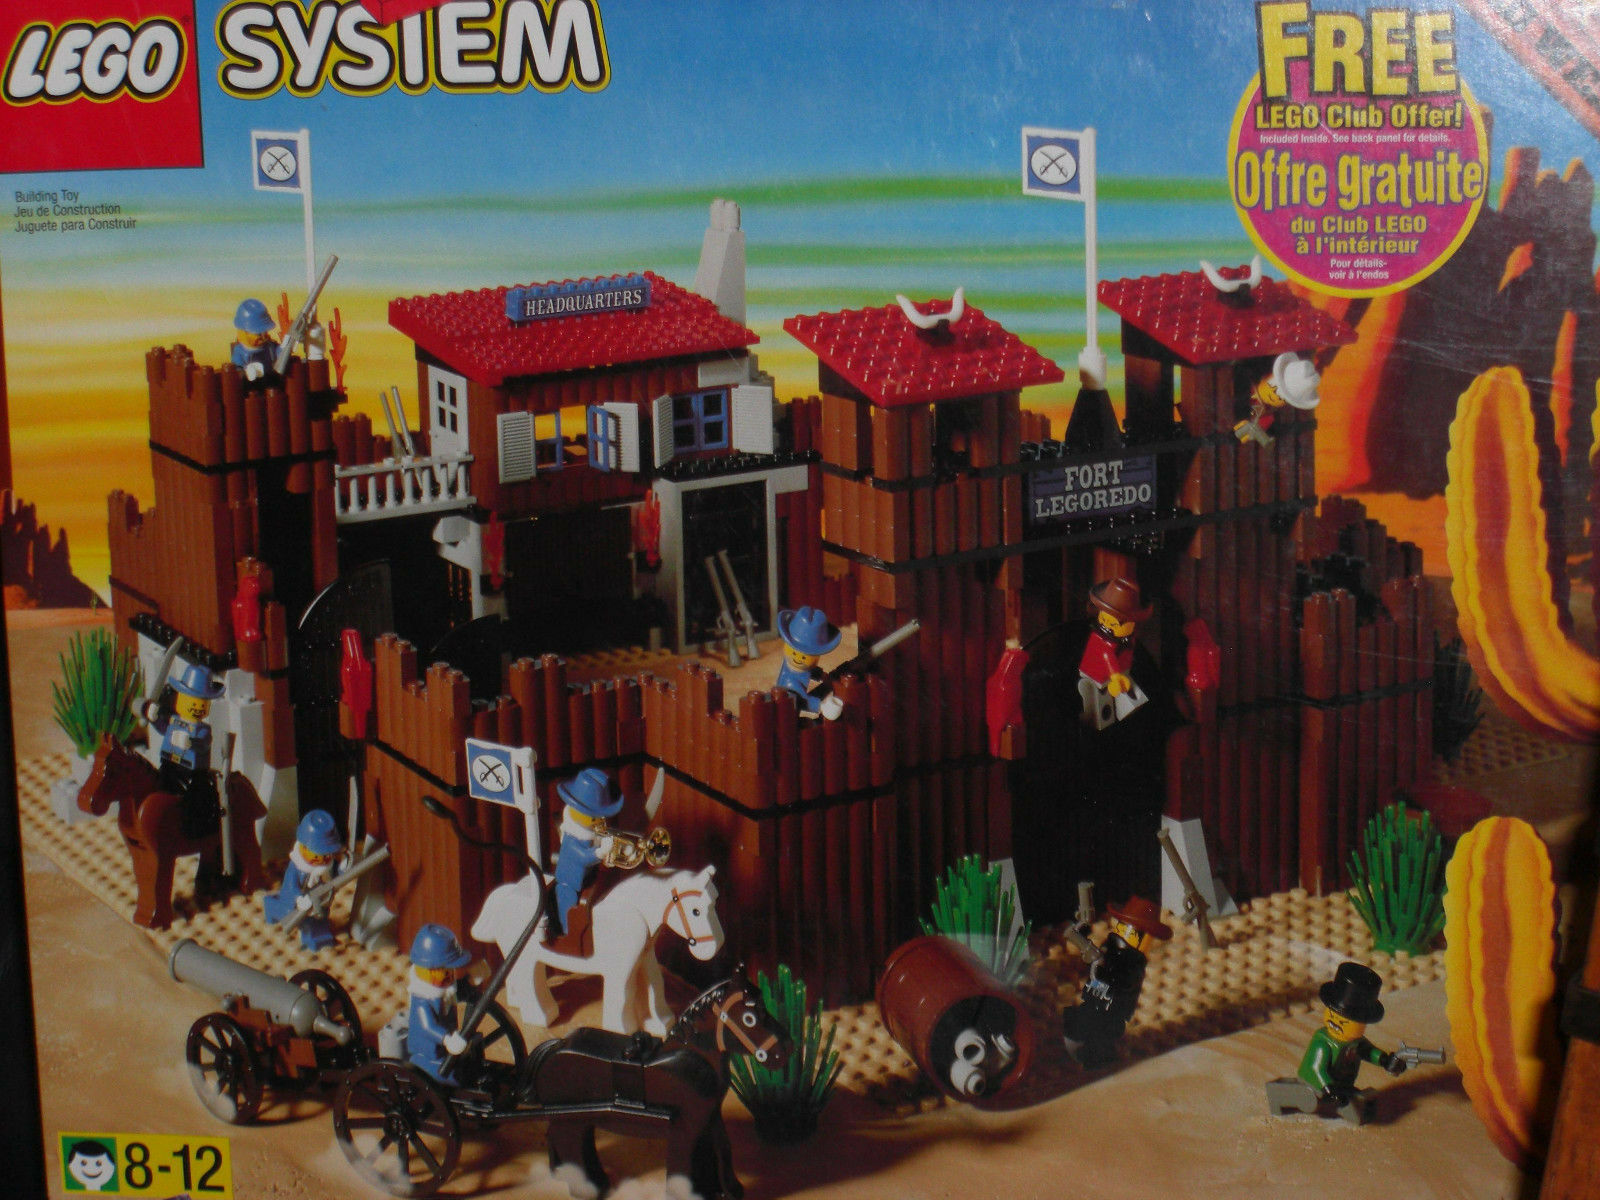 Lego System  6769 Wild West Fort Legorossoo Nuovo Sealed